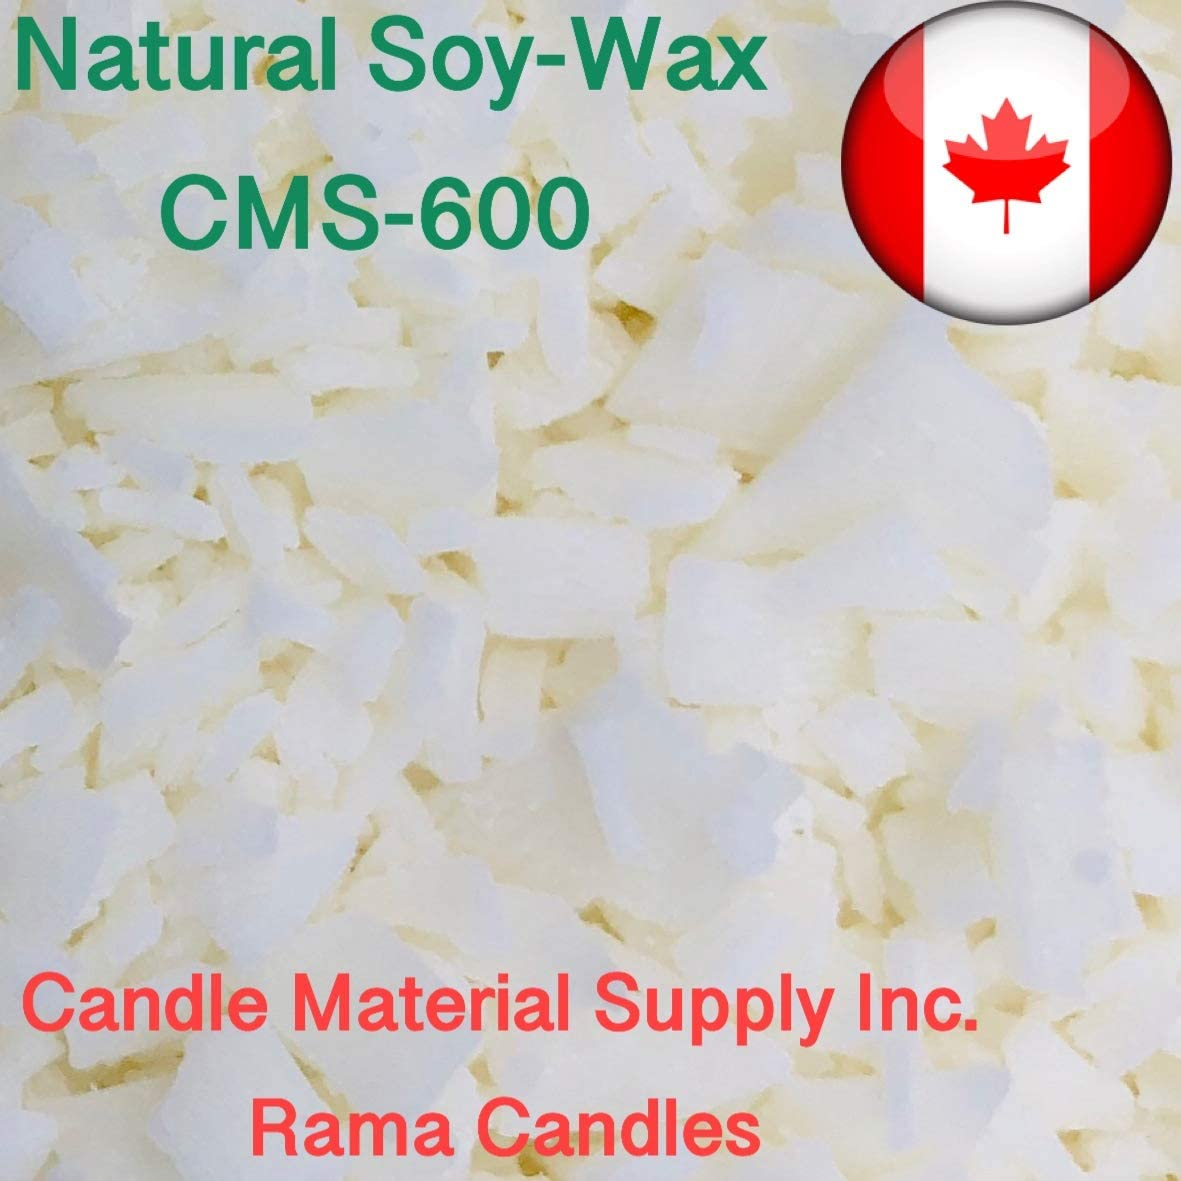 7 LB Natural Soy Wax Flakes CMS-600 Whitener - Excellent for containers- Free Vybar Instruction for Making Candles Included UV stabilizer Each 7gr Included